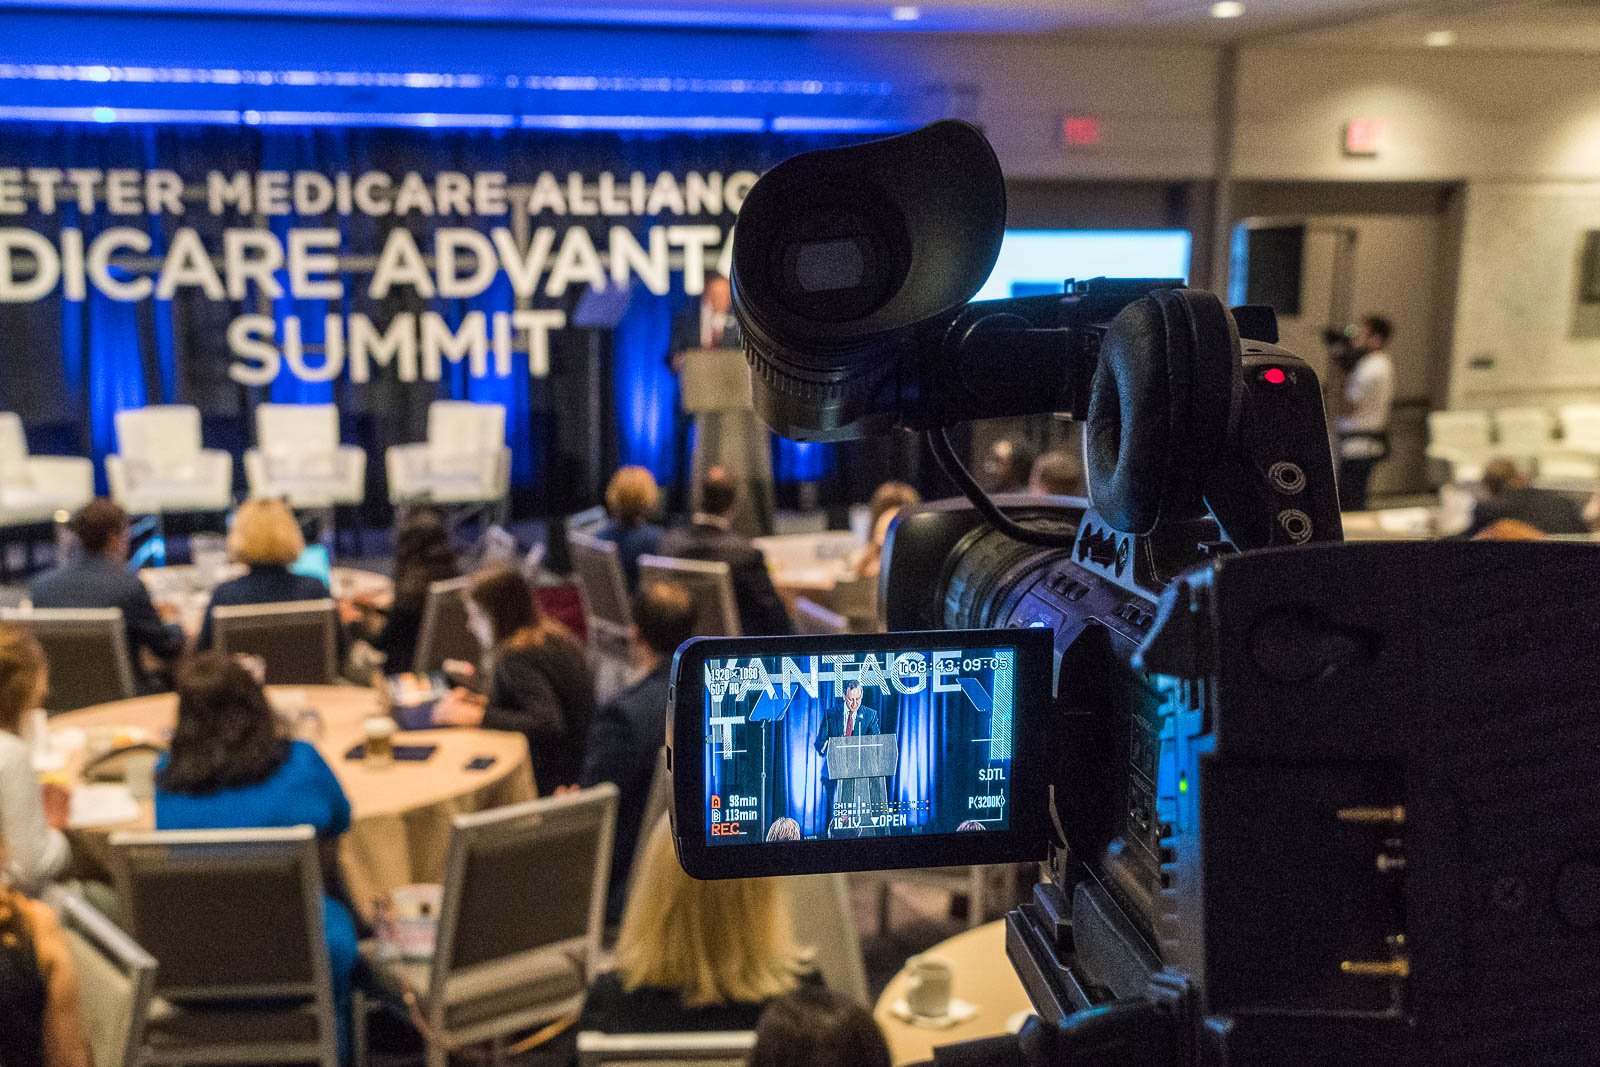 Medicare Advantage Summit 2019 event AV